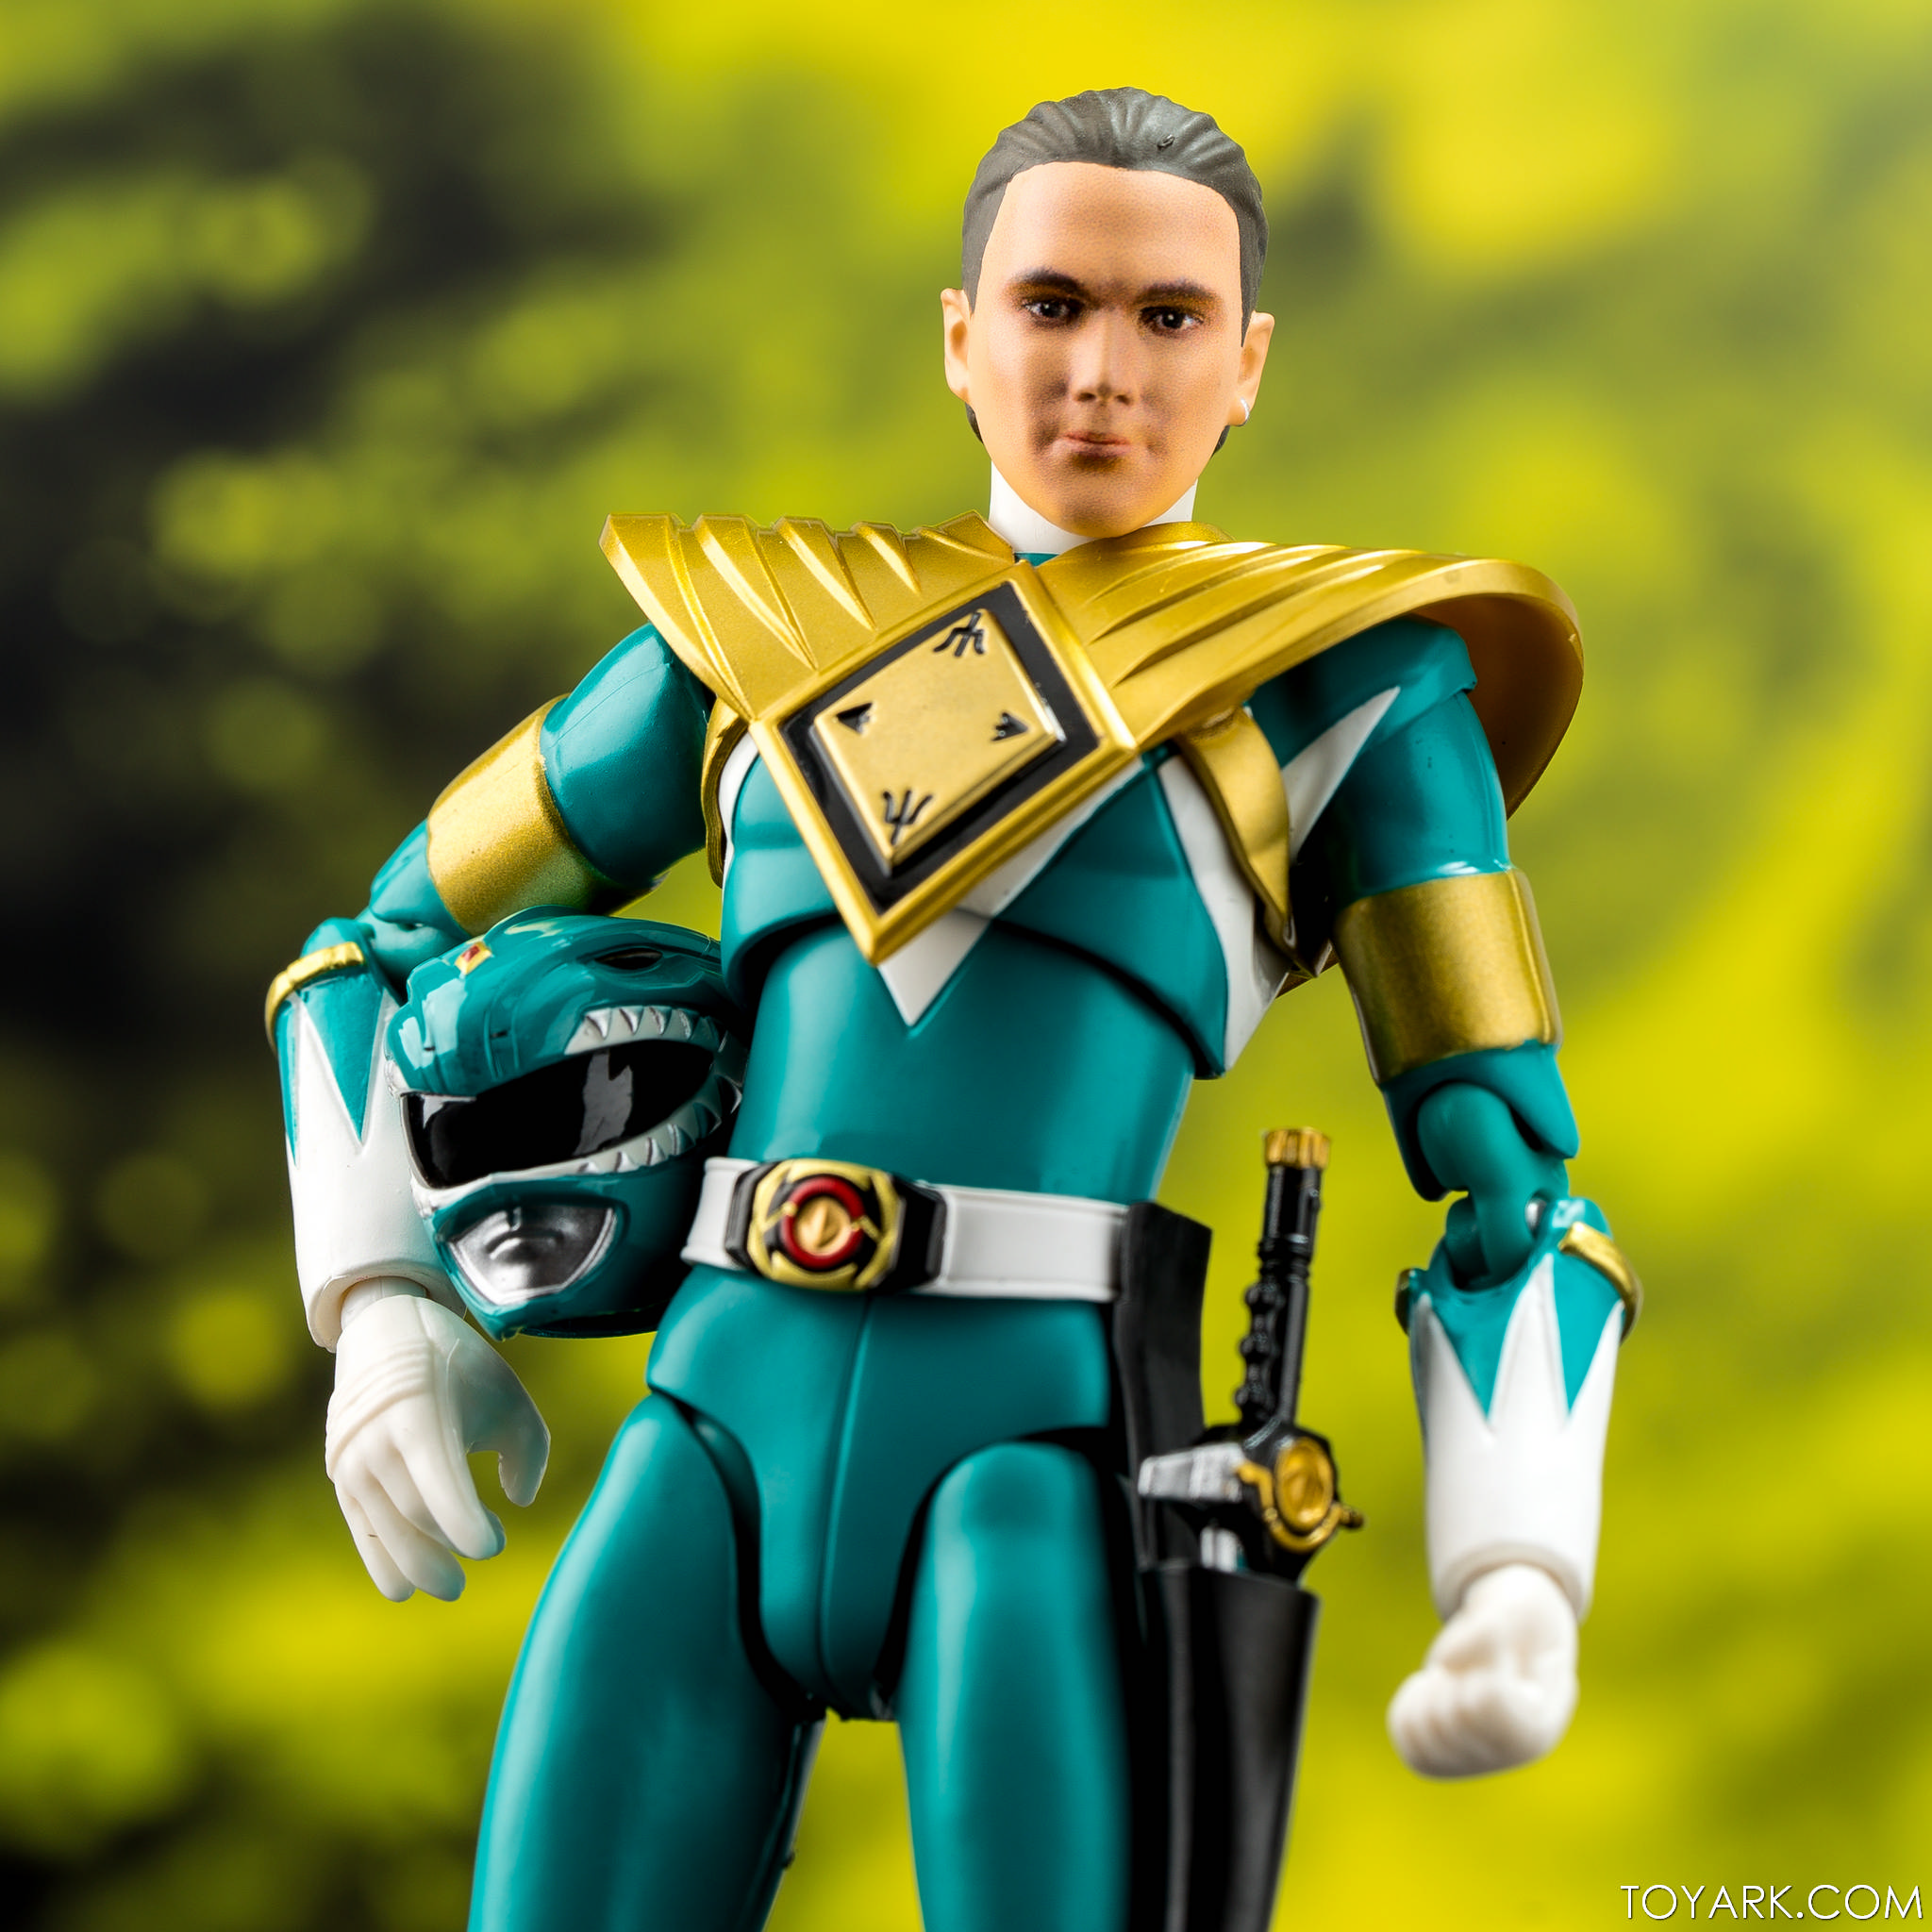 Quick Look - SDCC SHF & SoC Power Rangers Exclusives - The Toyark - News